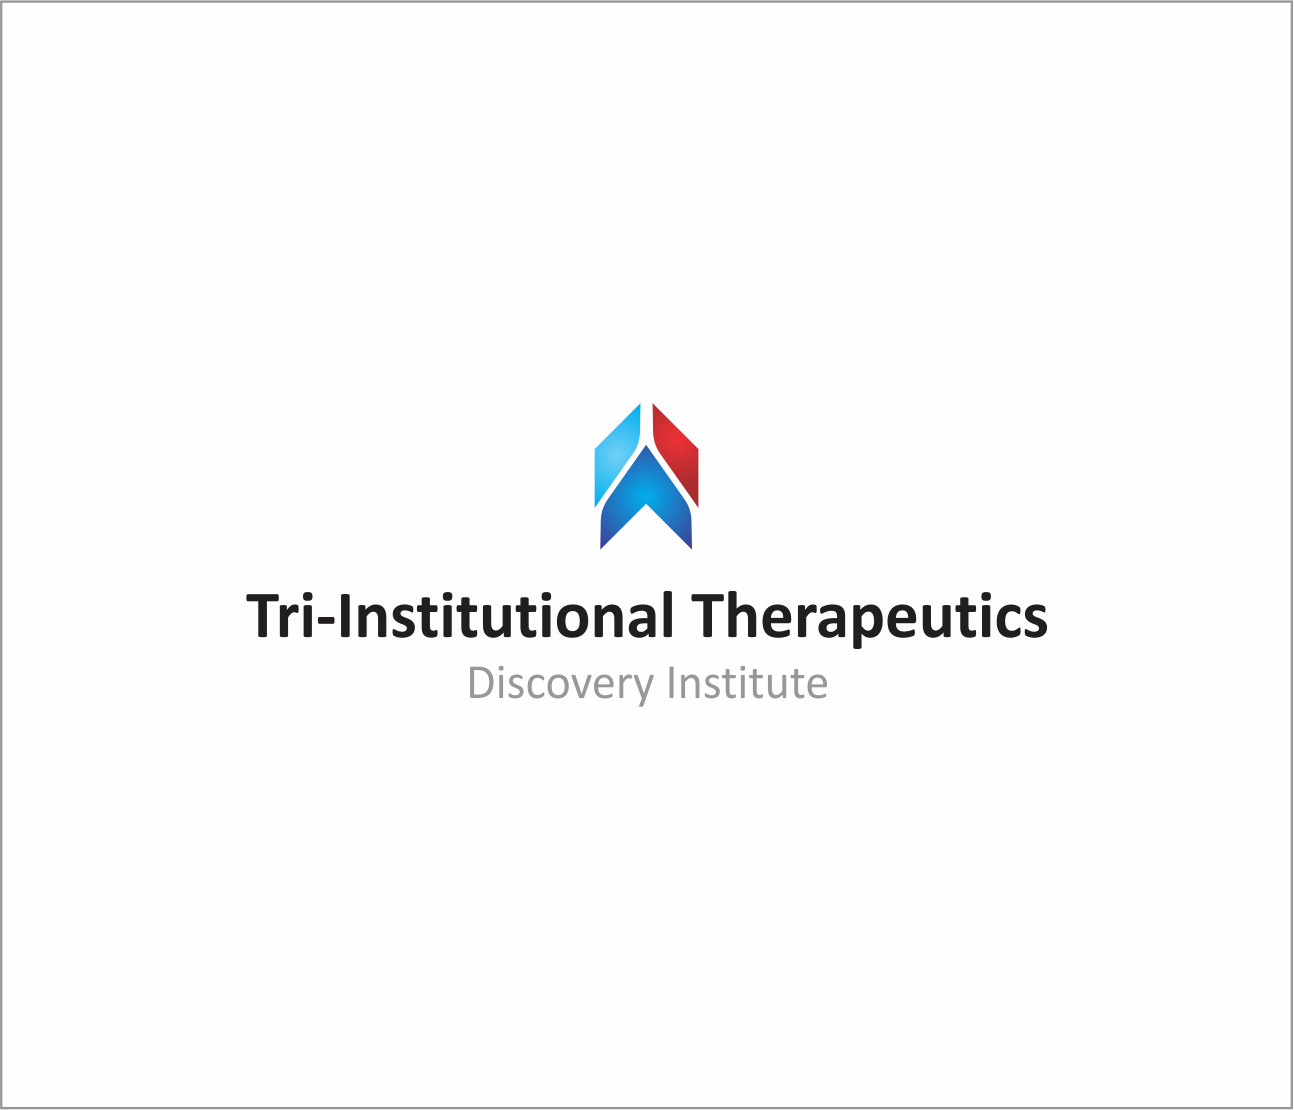 Logo Design by Armada Jamaluddin - Entry No. 102 in the Logo Design Contest Inspiring Logo Design for Tri-Institutional Therapeutics Discovery Institute.